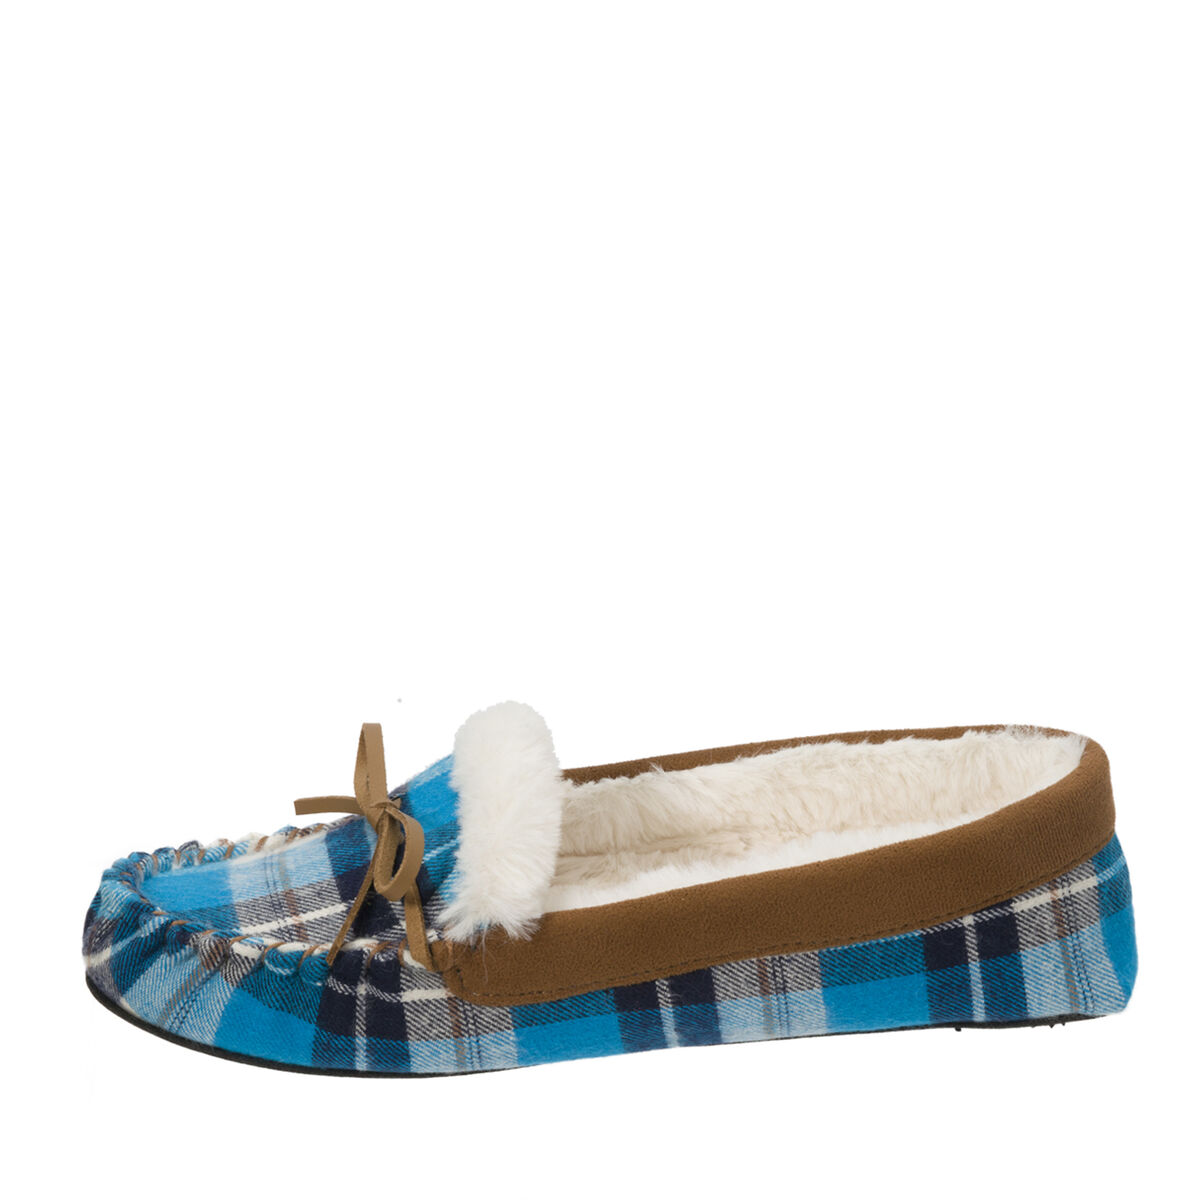 Women's Mixed Material Moccasin